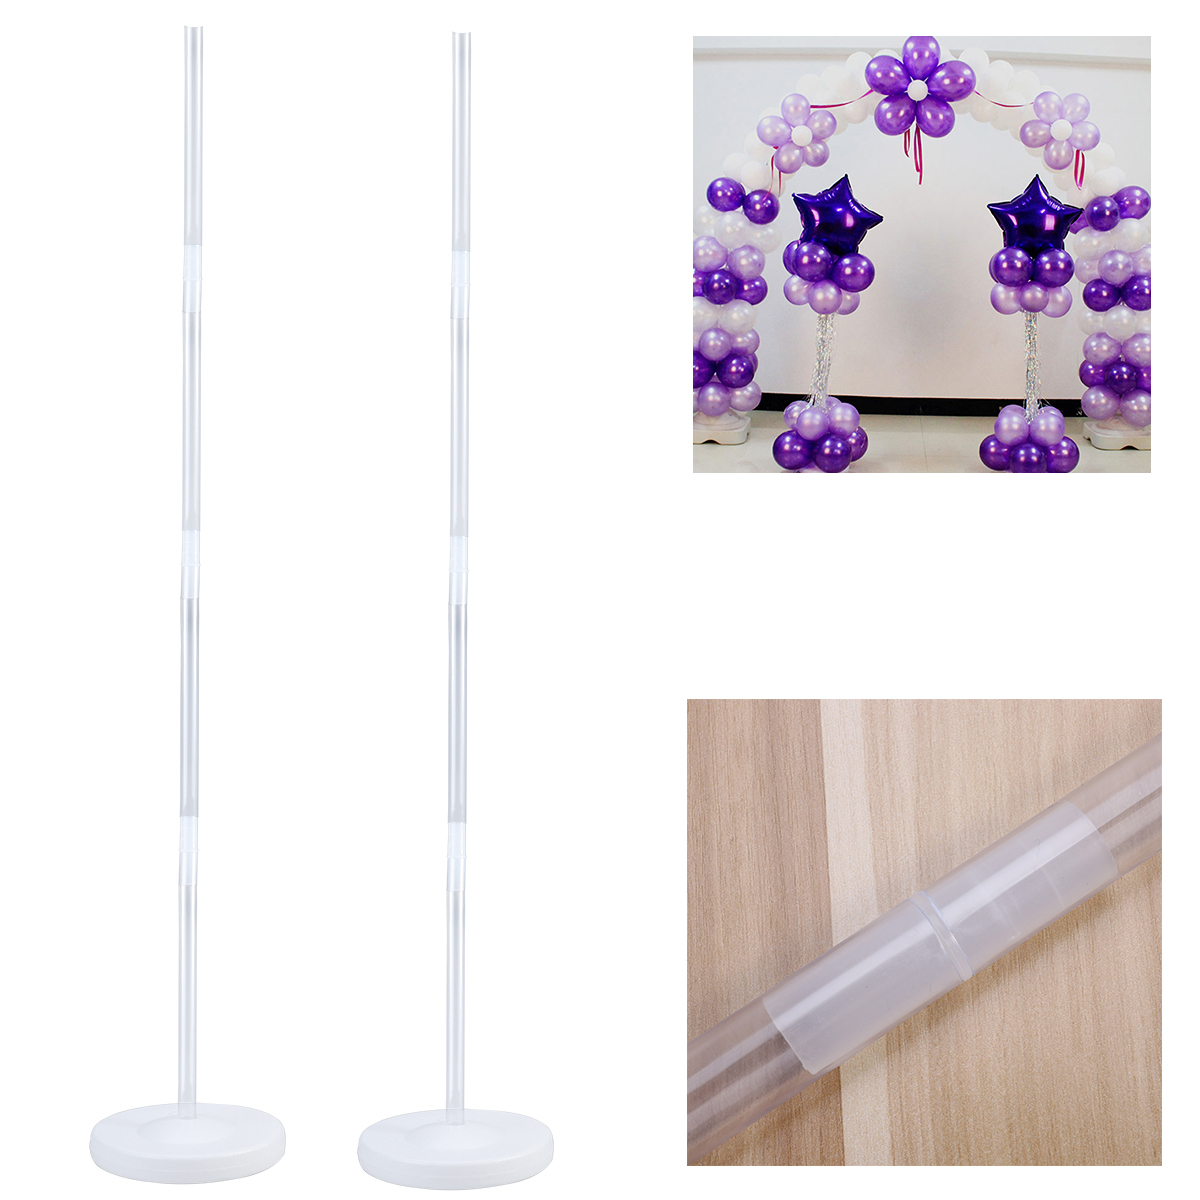 top Balloon Arch Frame Column Stand Builder Kit for Birthday Wedding Party Decor